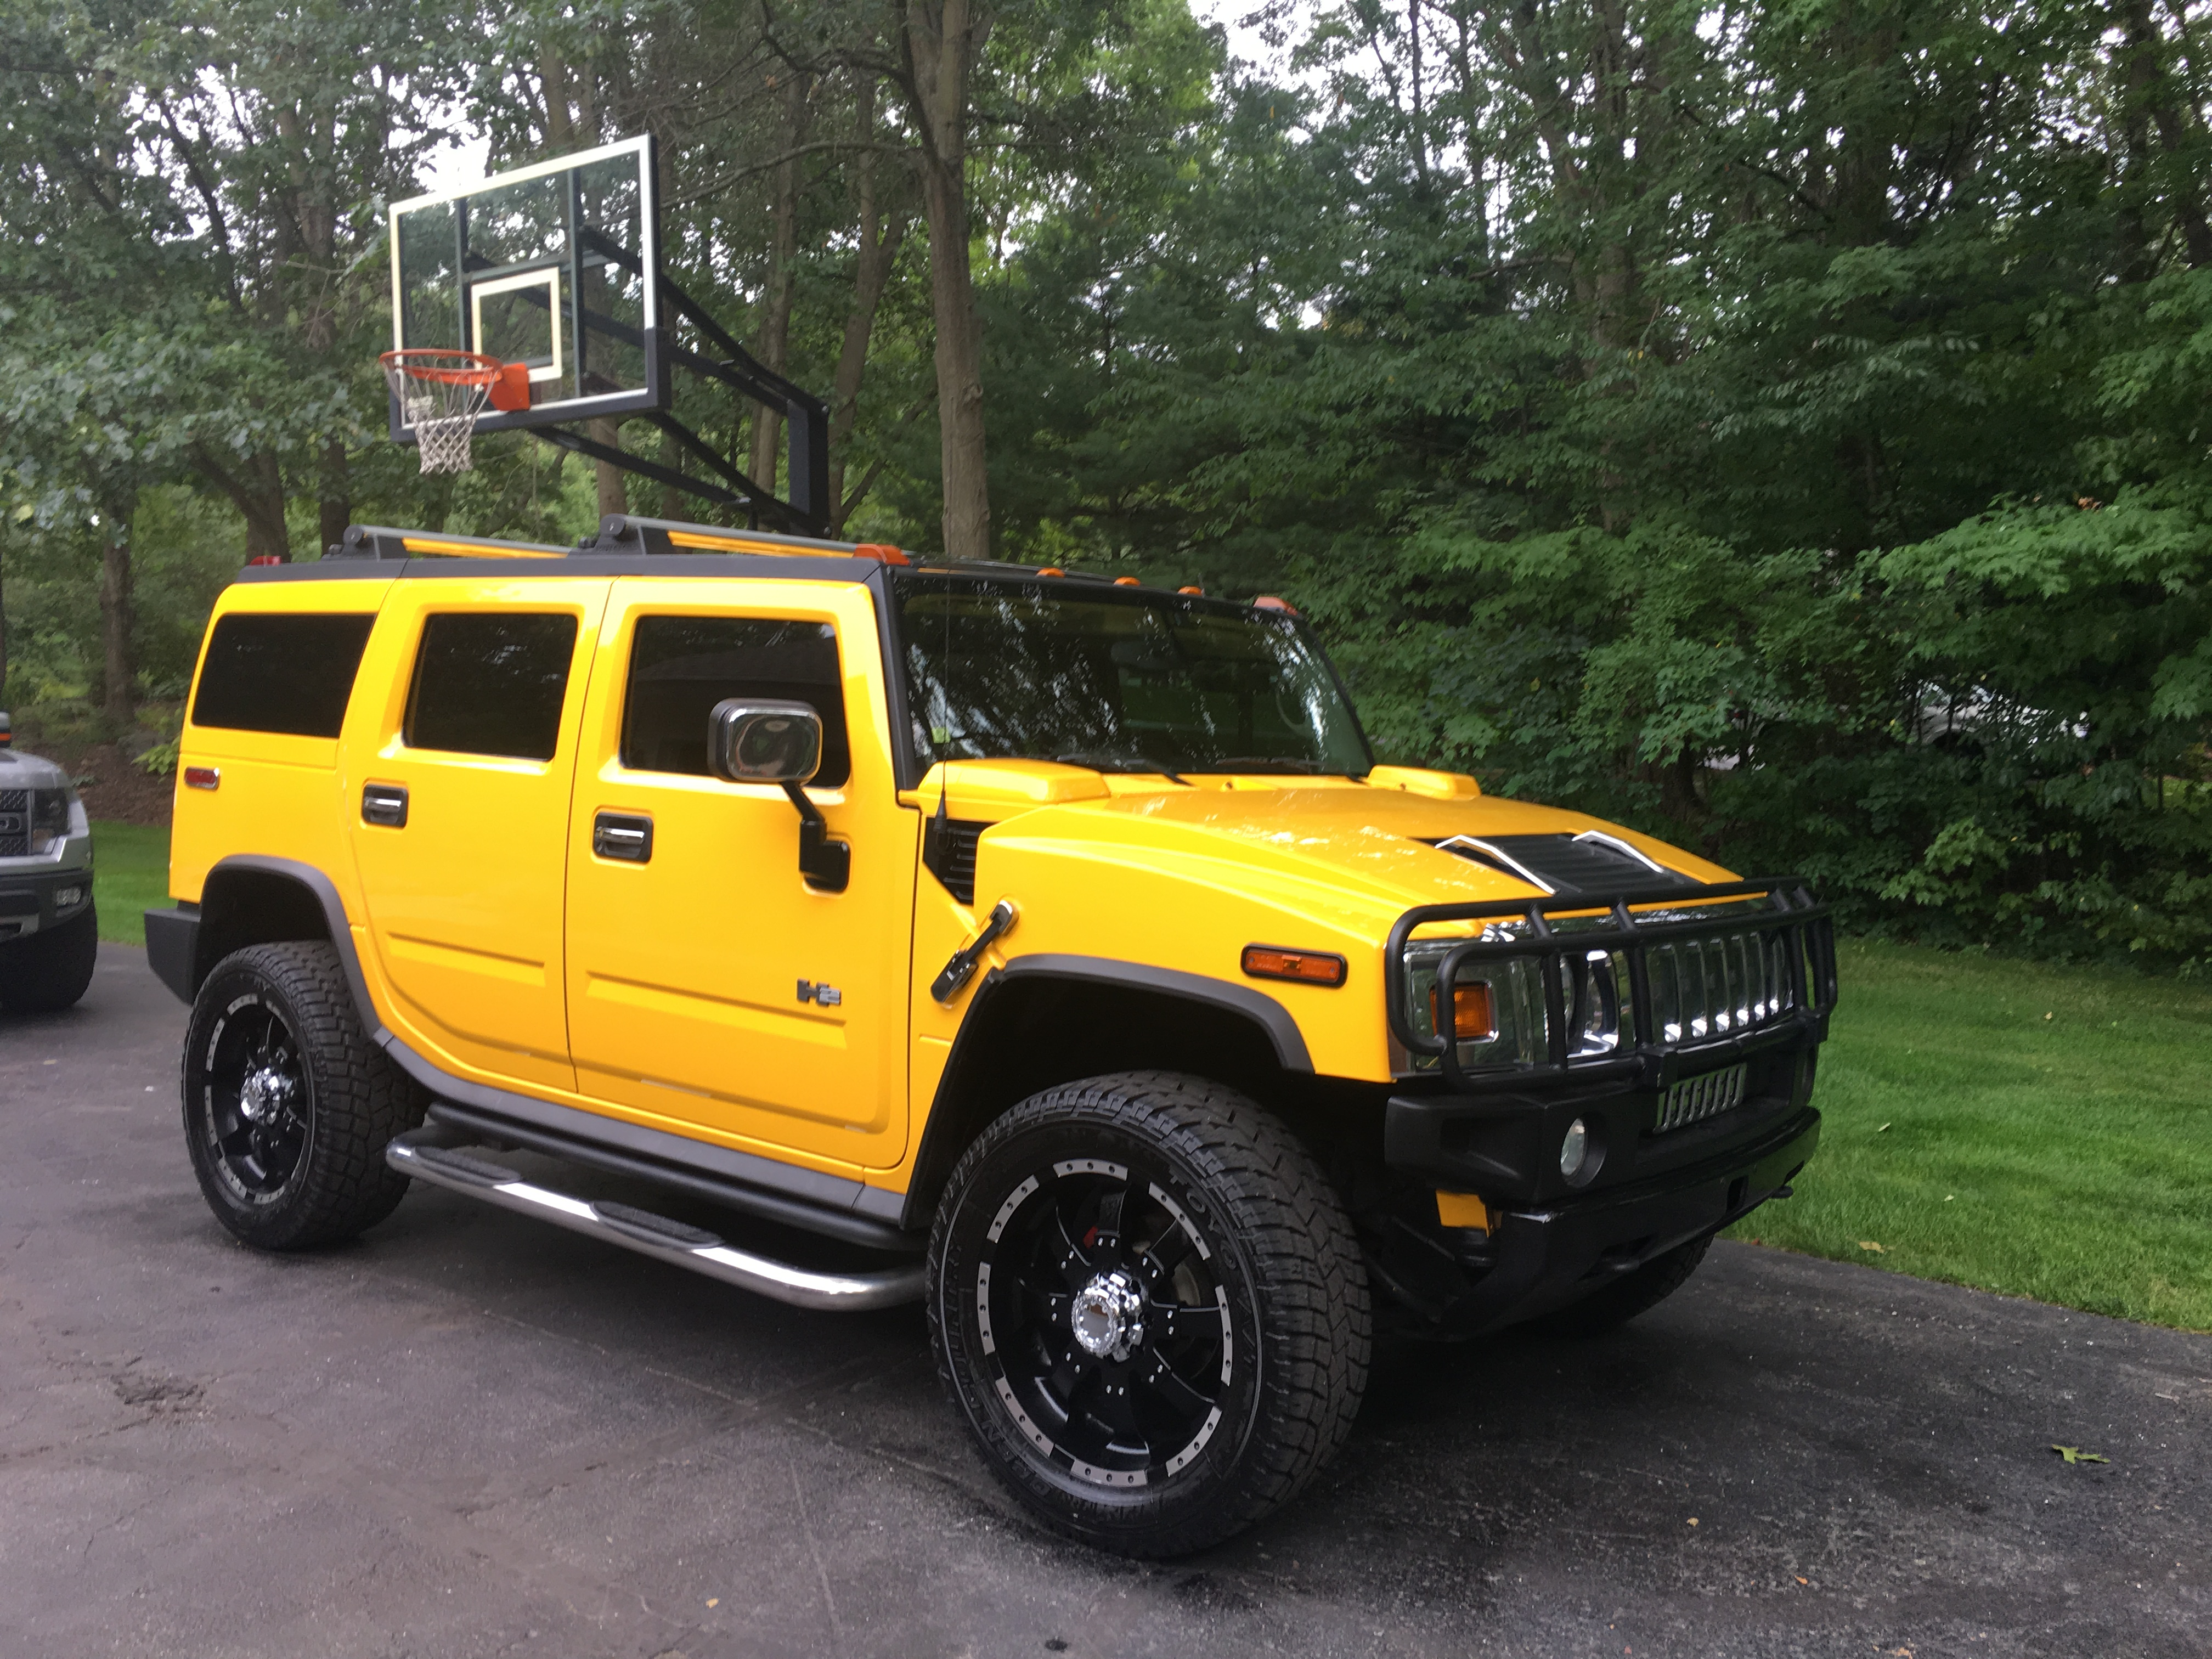 2004 Hummer H2 for sale or trade Hummer Forums Enthusiast